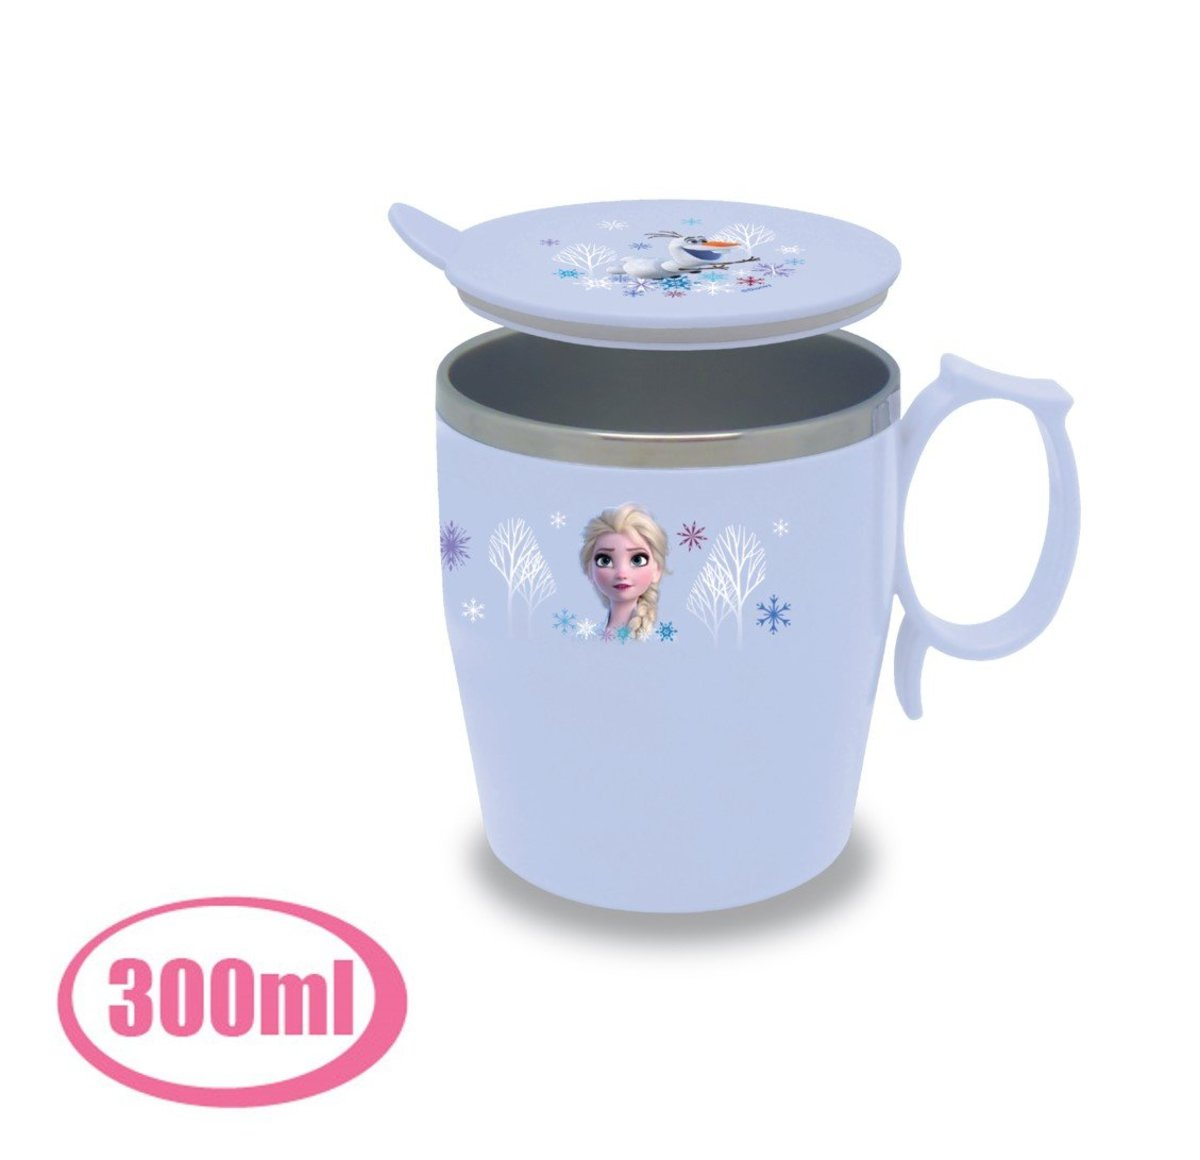 stainless steel cup A(300ml)  (Licensed by Disney)